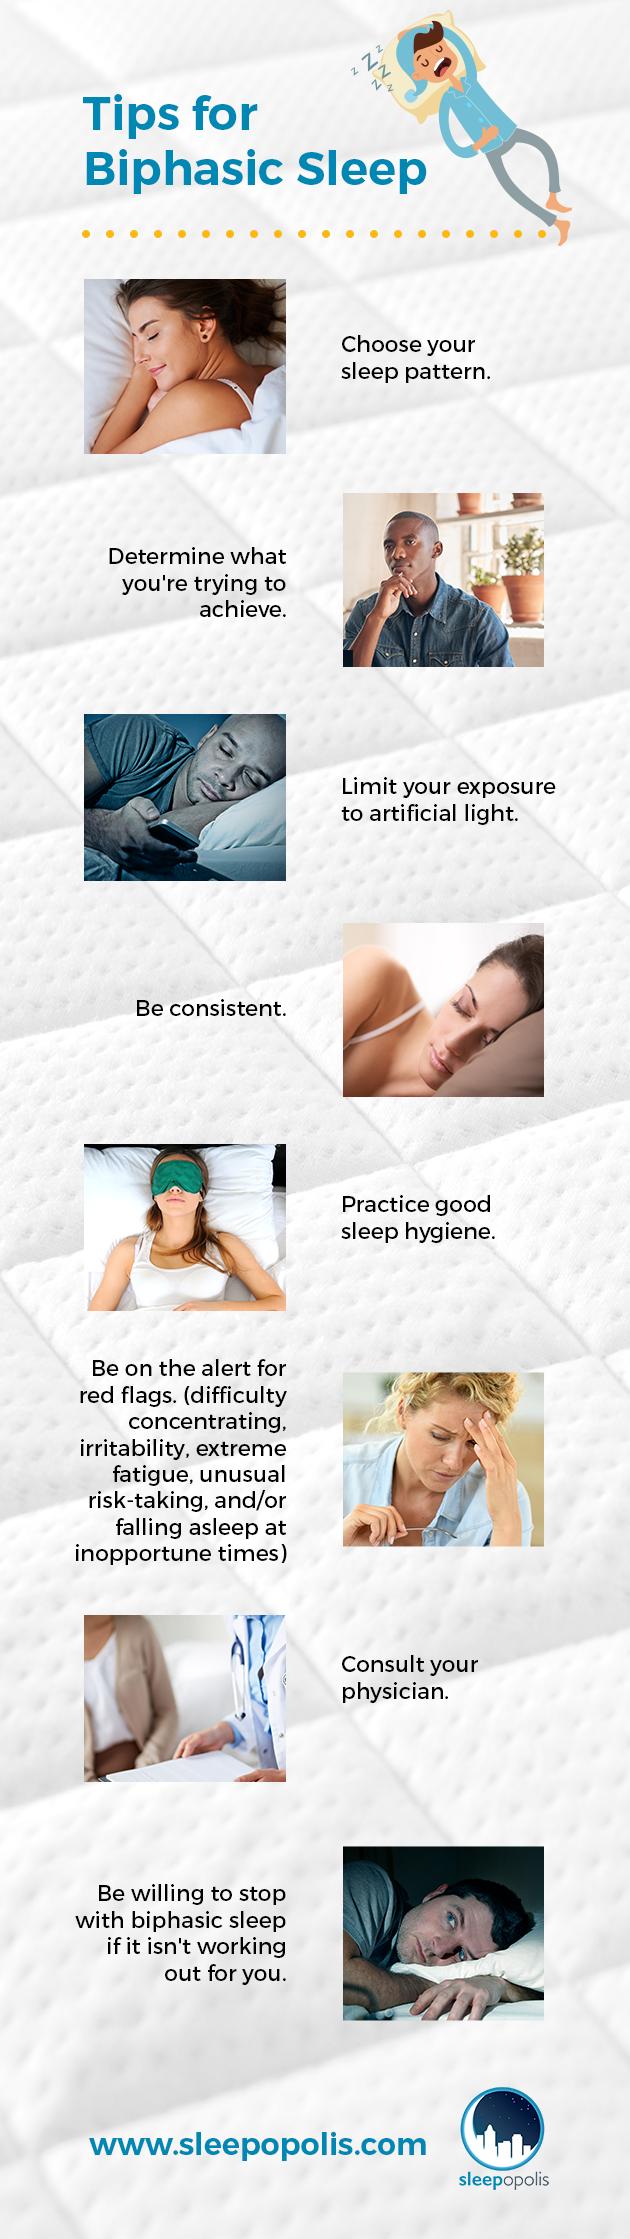 Tips for Biphasic Sleep